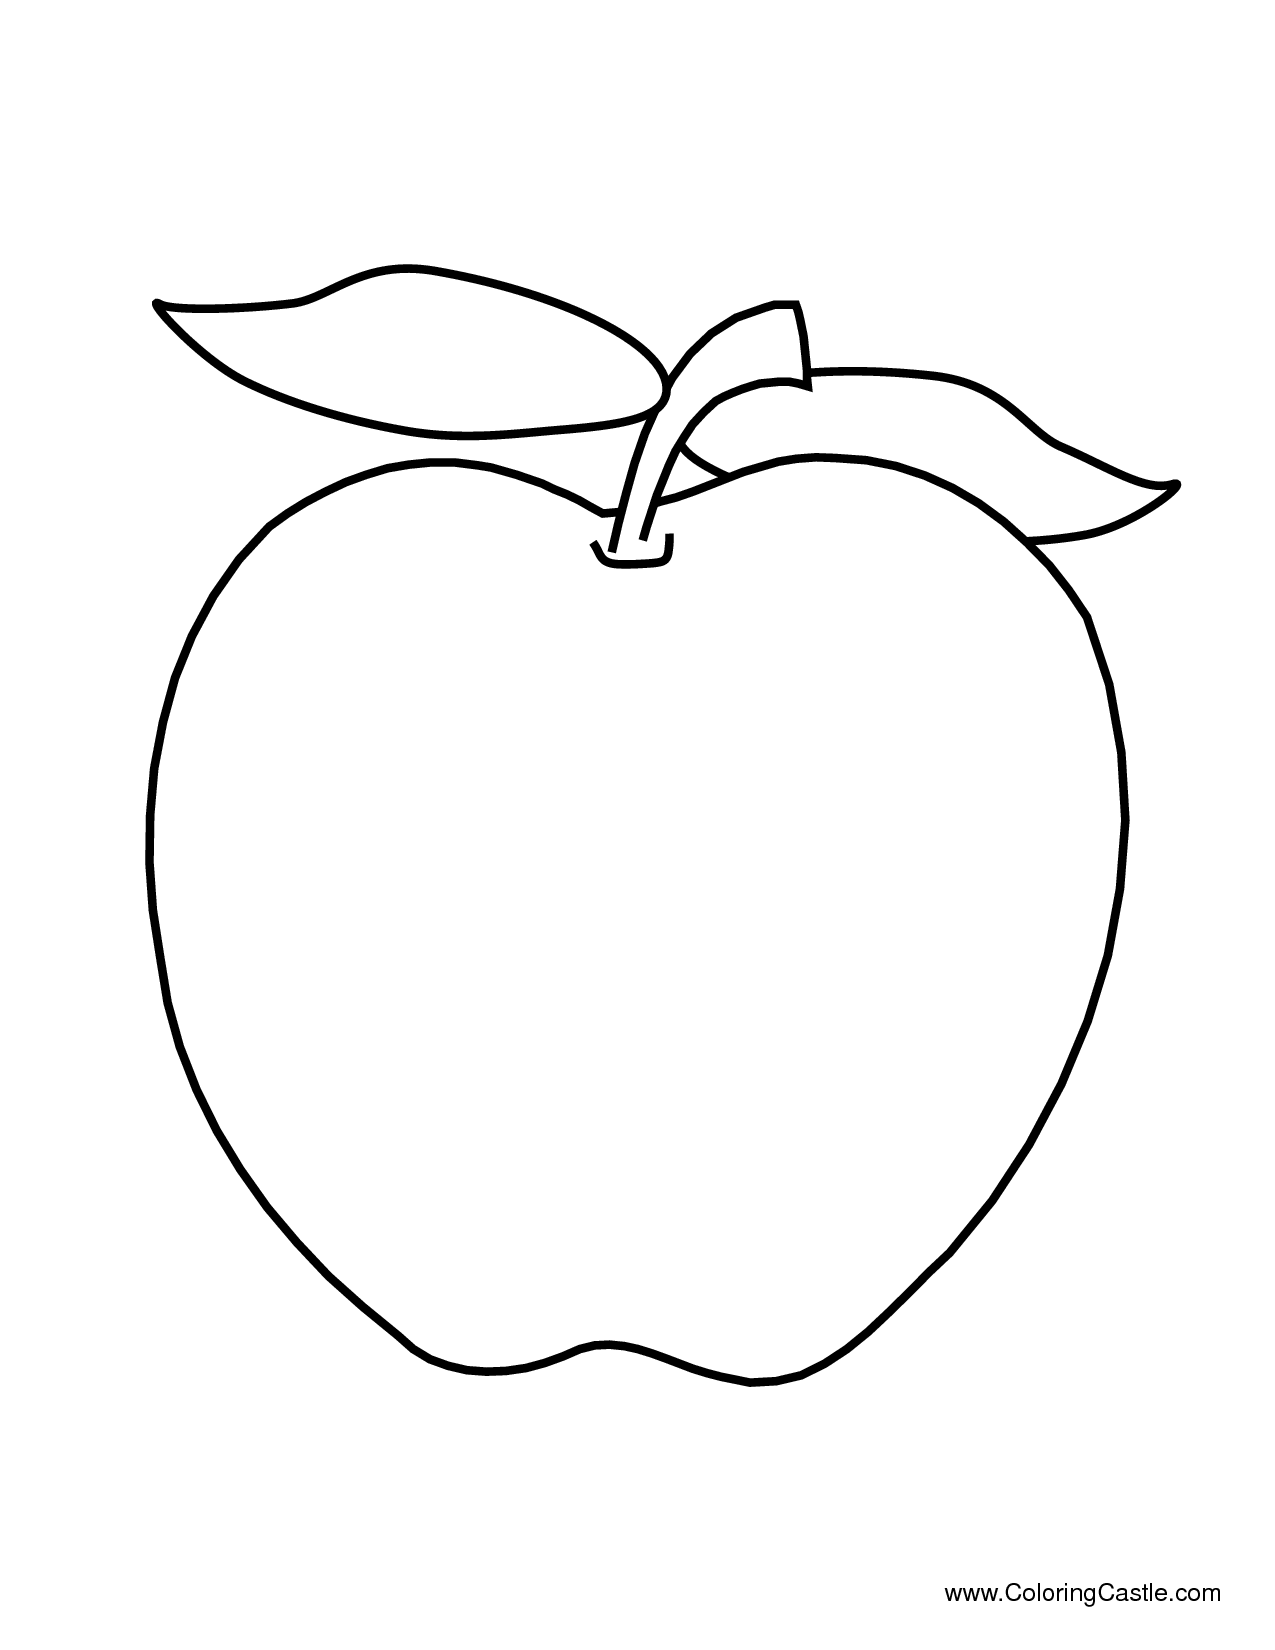 Fruit clipart template. Free coloring pages of